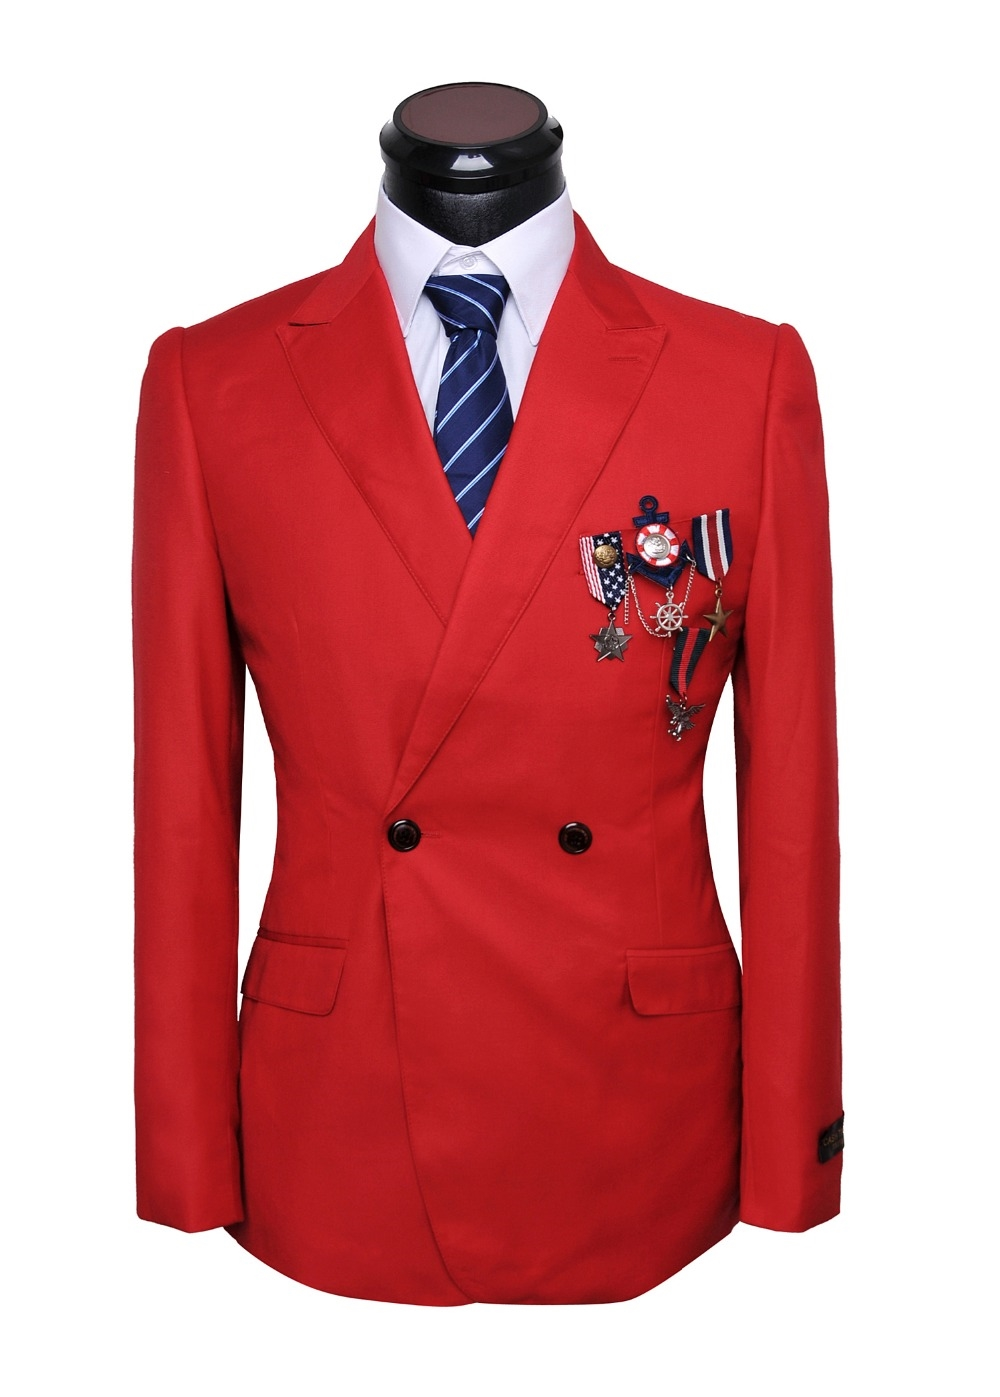 watch now new fashion wedding suits for men brand